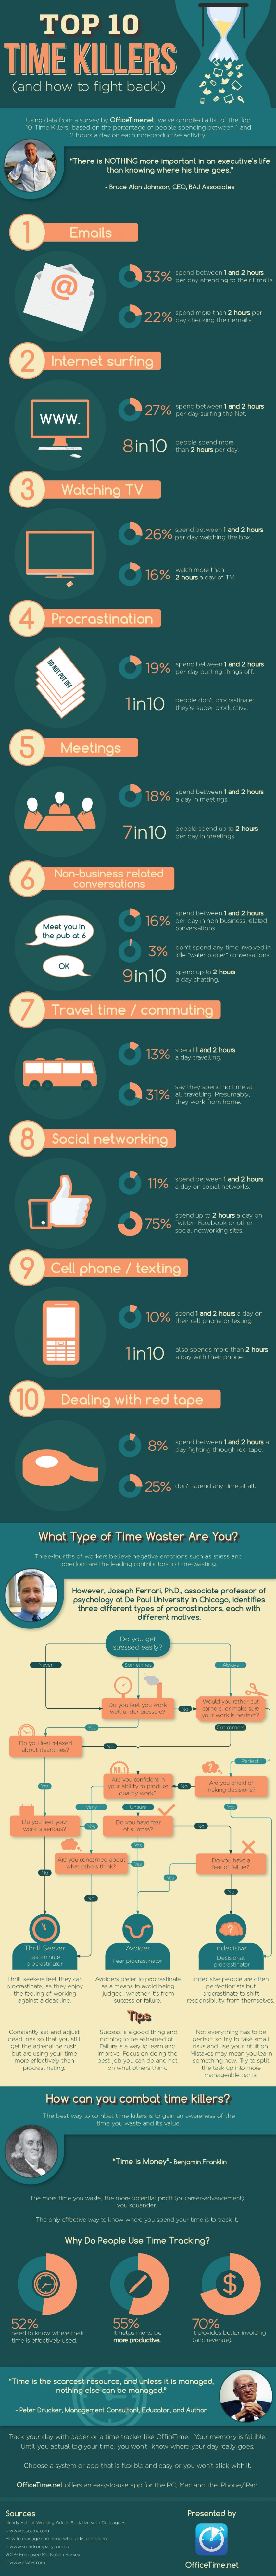 time killers online infographic